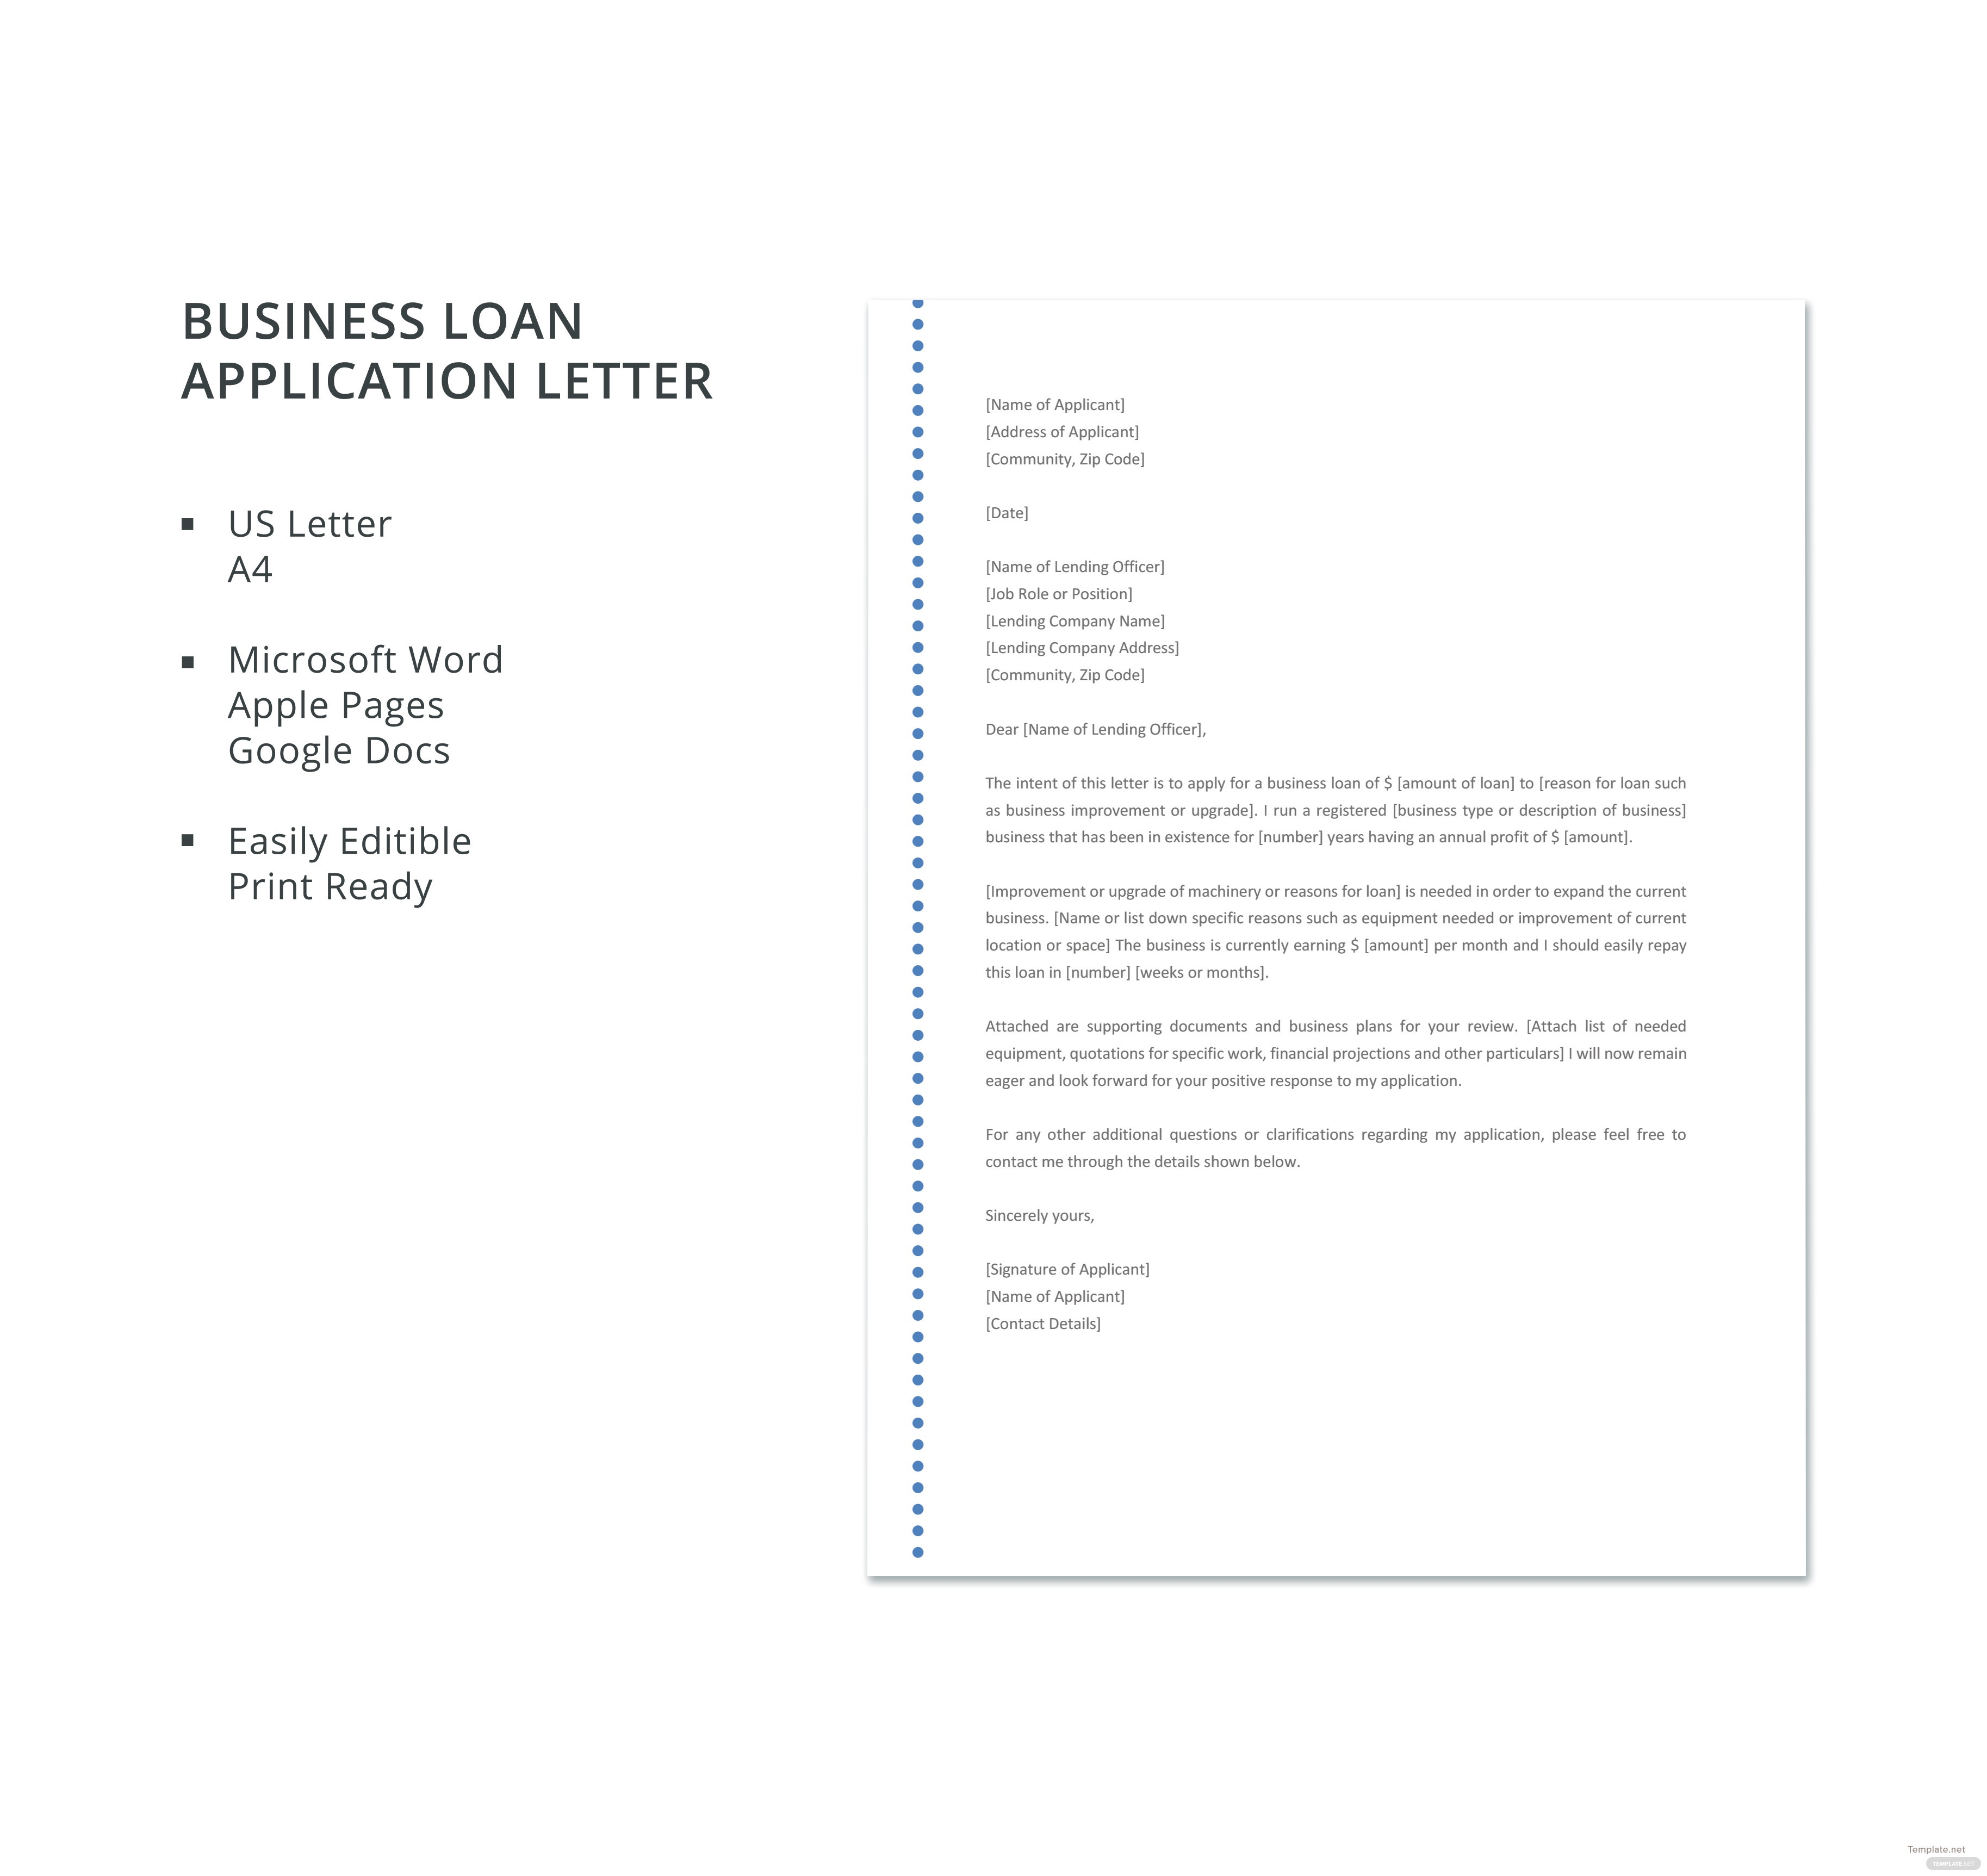 Business loan application letter choice image reference letter business loan application letter template in microsoft word apple altavistaventures Image collections